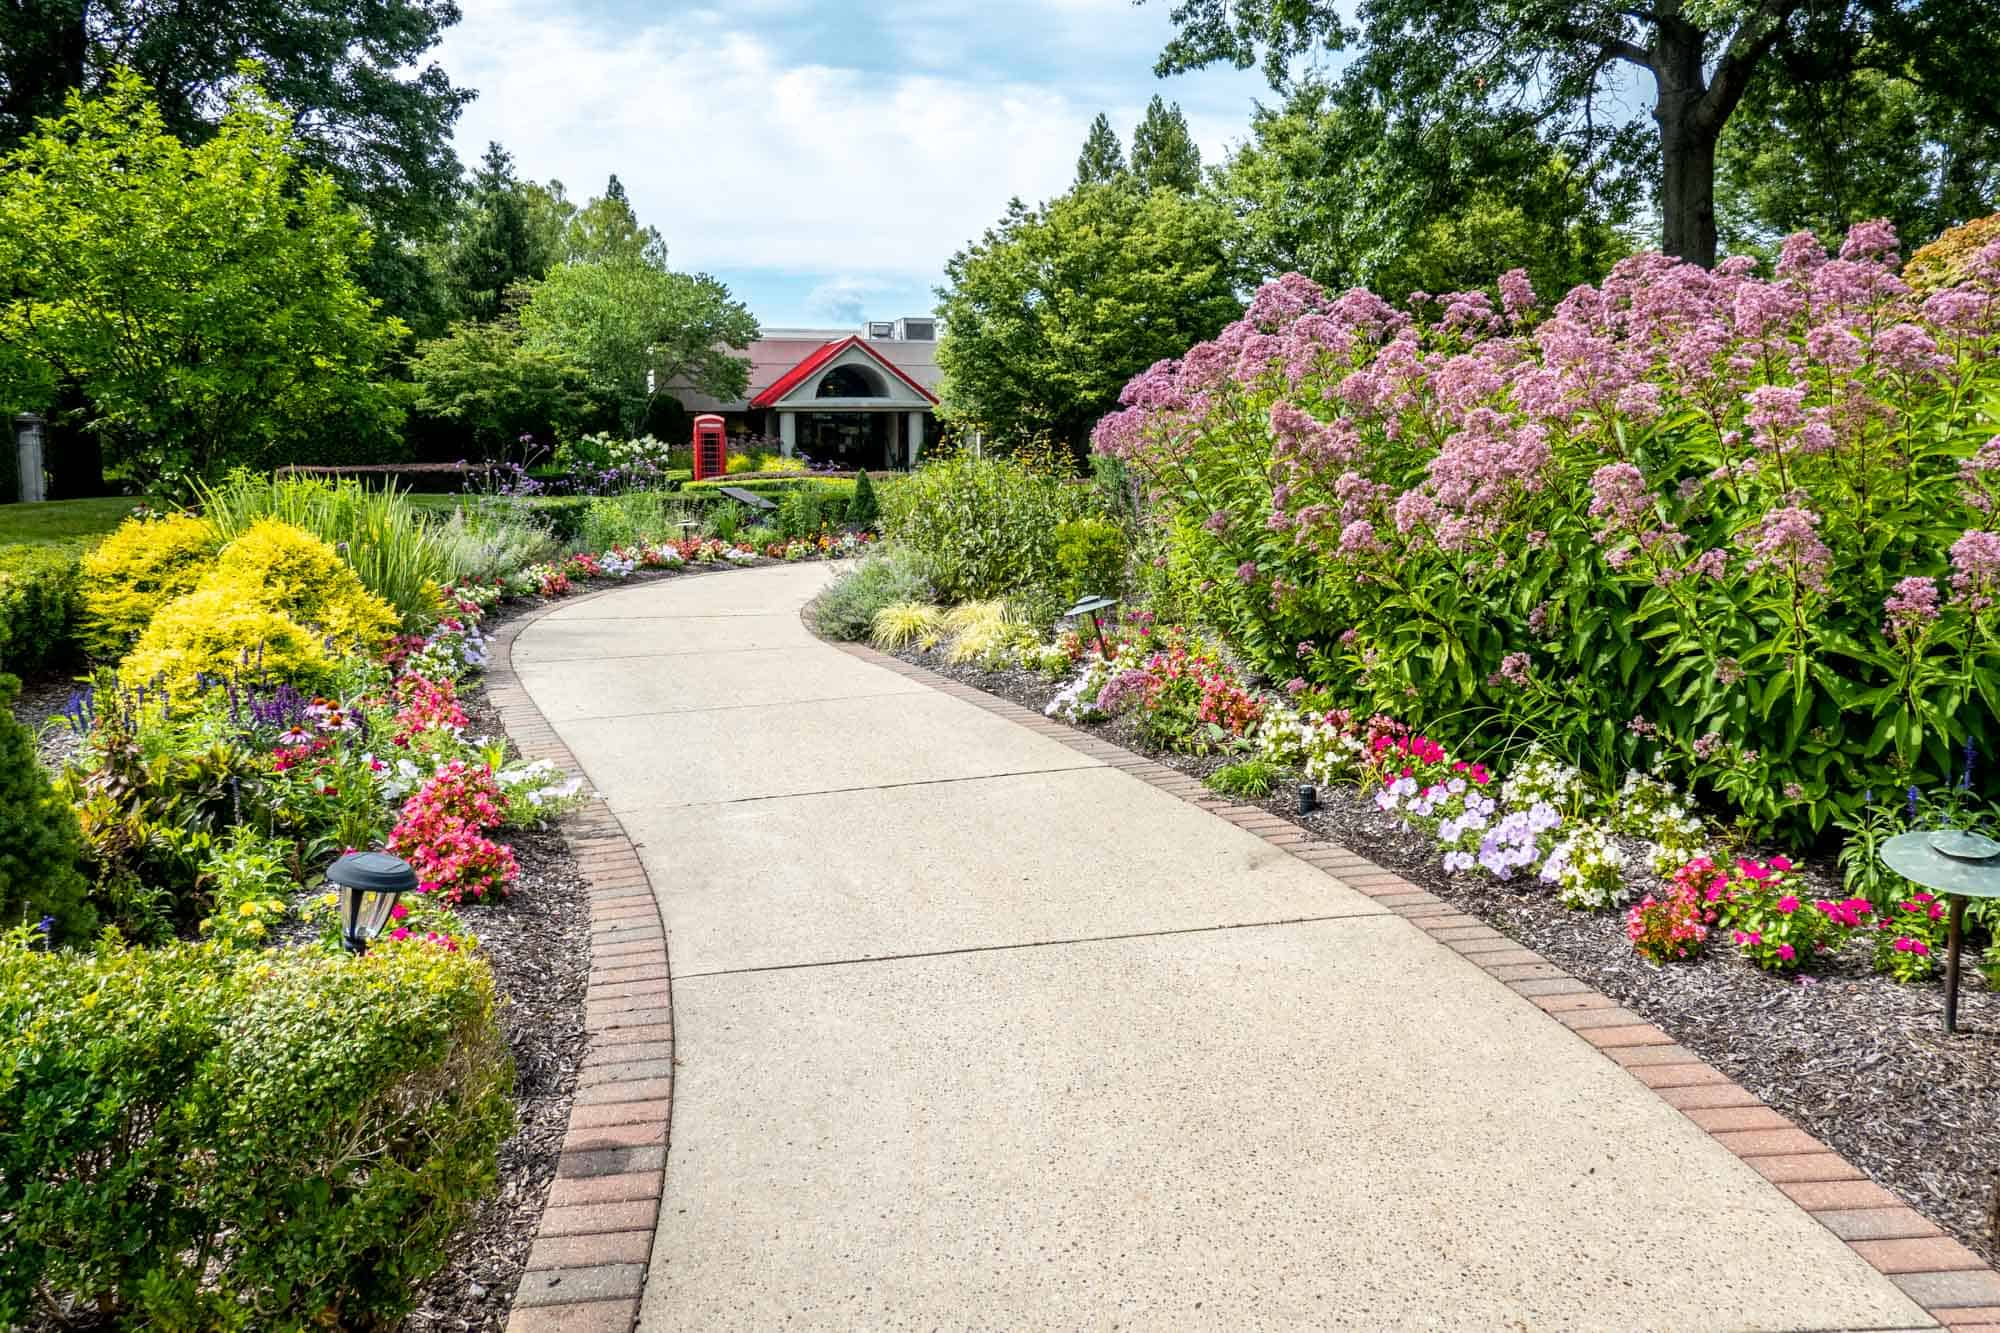 Gardens and concrete pathway